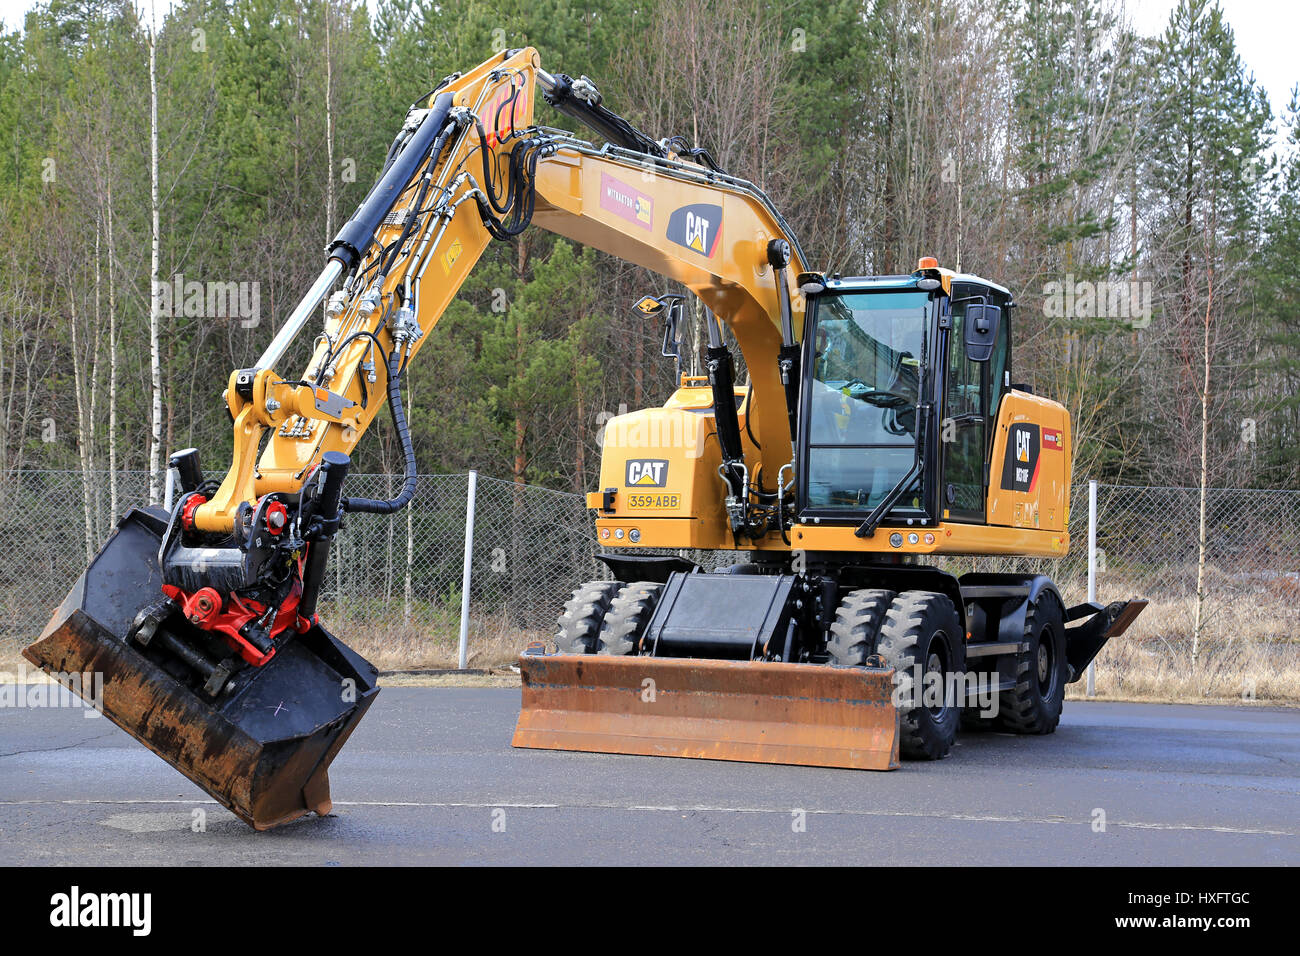 LIETO FINLAND - MARCH 25 2017: Cat M318F wheeled excavator on Stock Photo Royalty Free Image